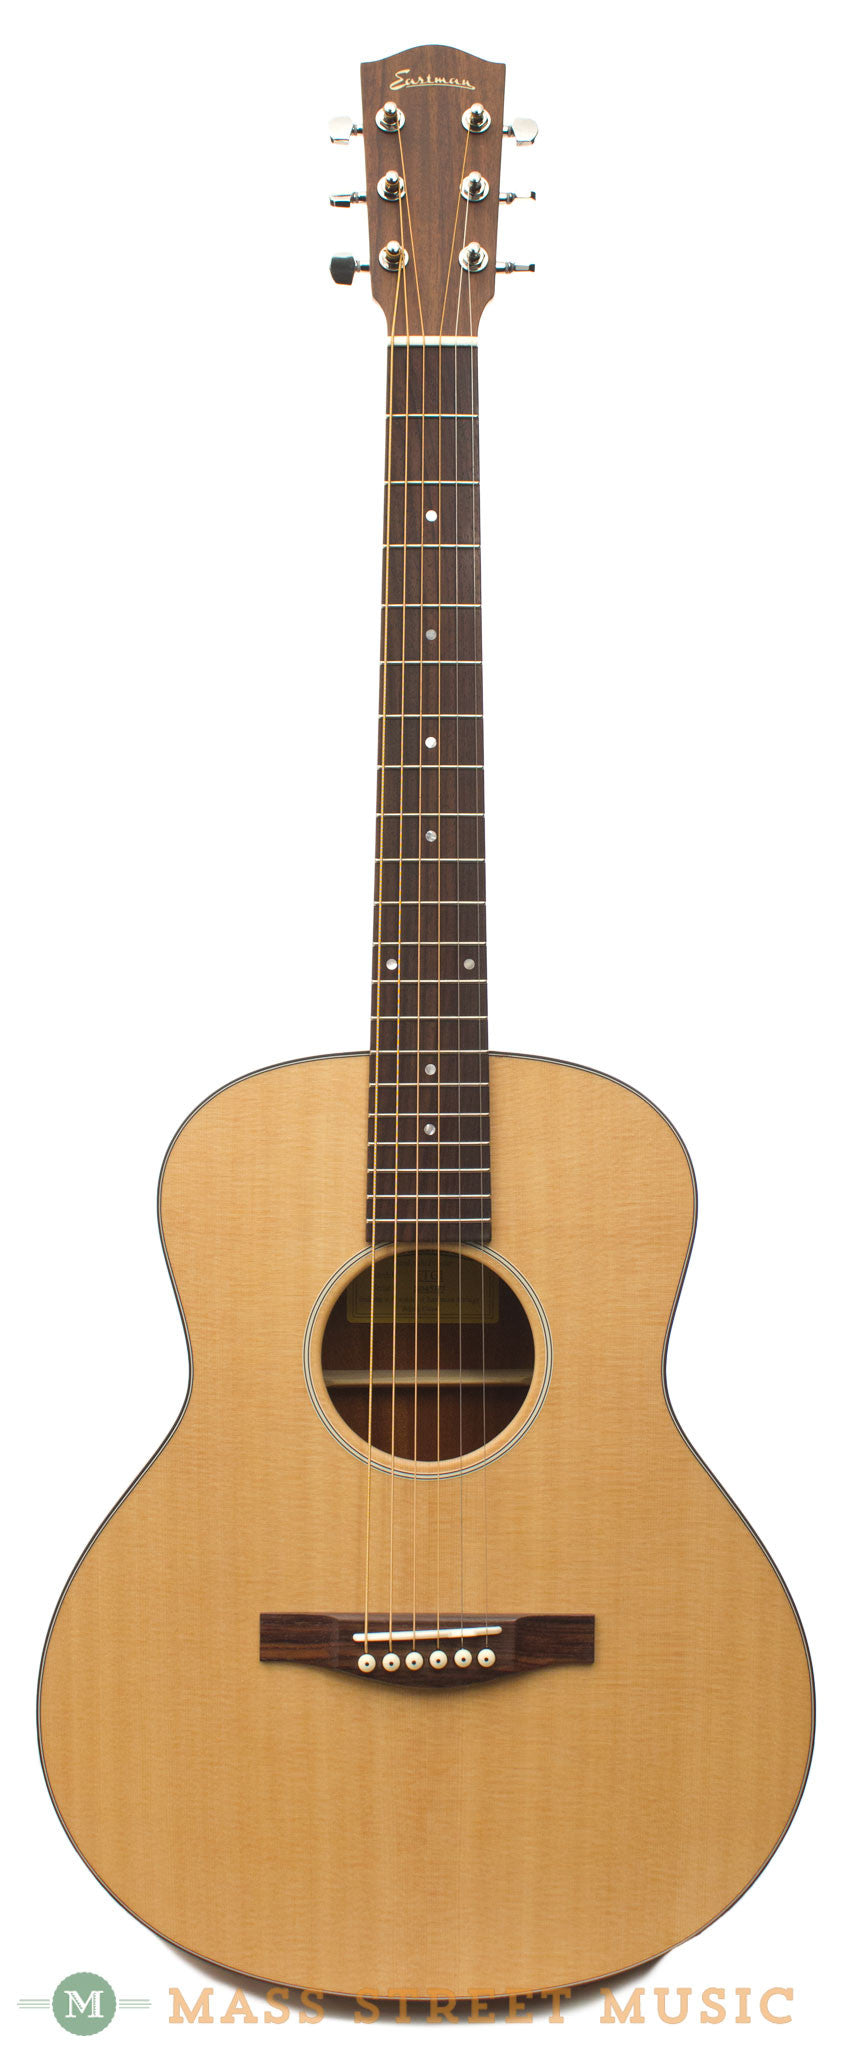 eastman acoustic guitars actg1 travel with gig bag mass street music store. Black Bedroom Furniture Sets. Home Design Ideas